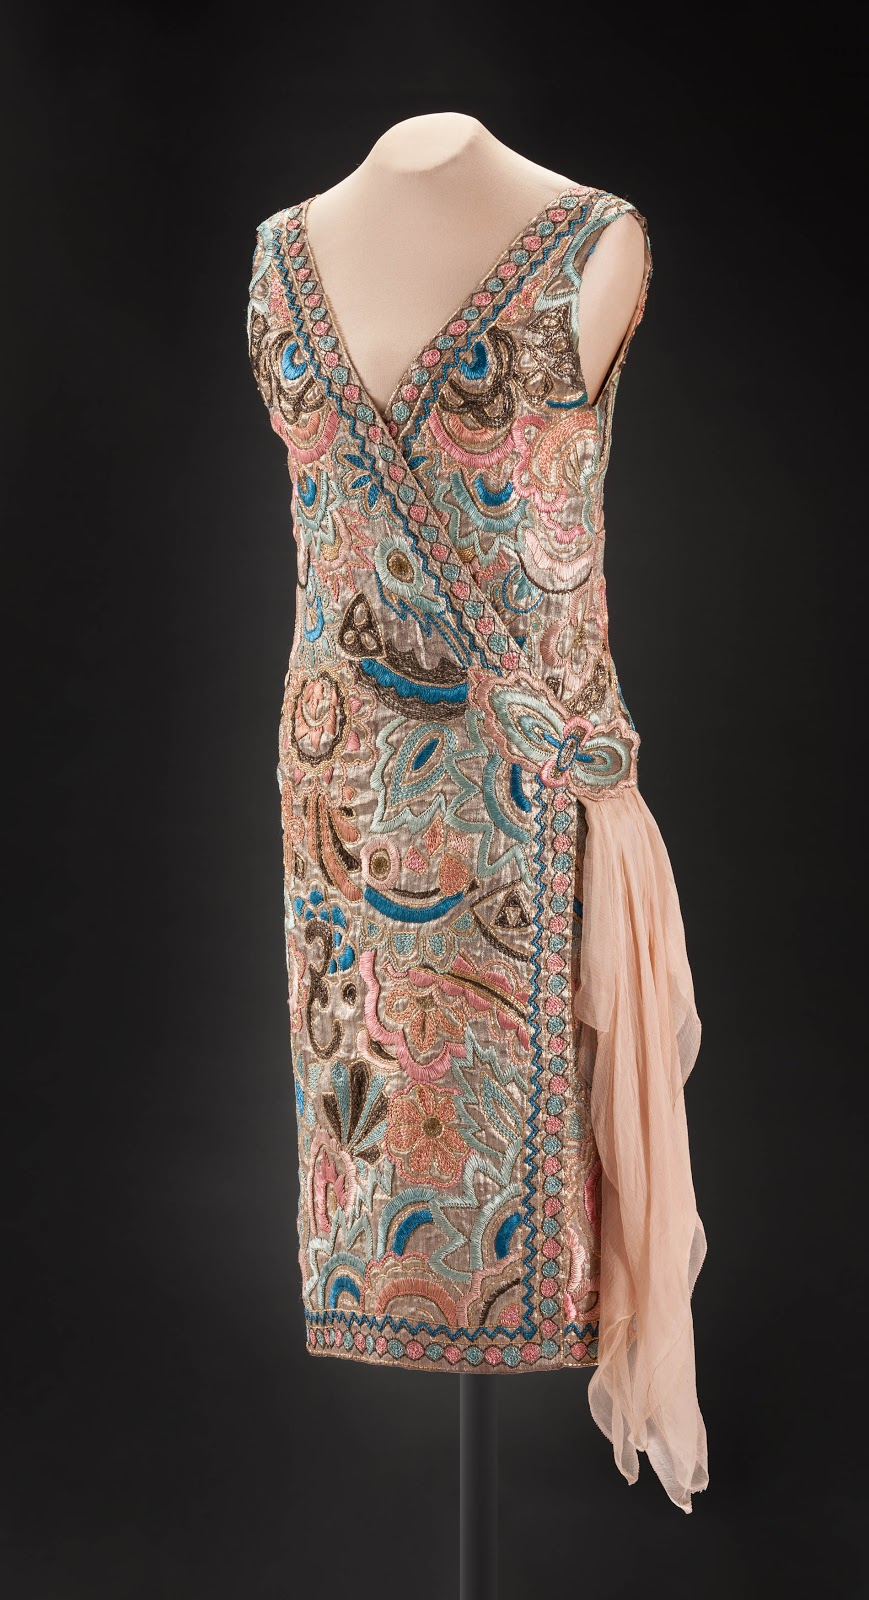 Glamour, Speed & Style Exhibit - Jenny of Paris, Emilie Grigsby evening dress, about 1926. Textile. Peabody Essex Museum, Gift of Mrs. Sanford S. Clark, 1971, 132655. © Peabody Essex Museum. Photo by Walter Silver.